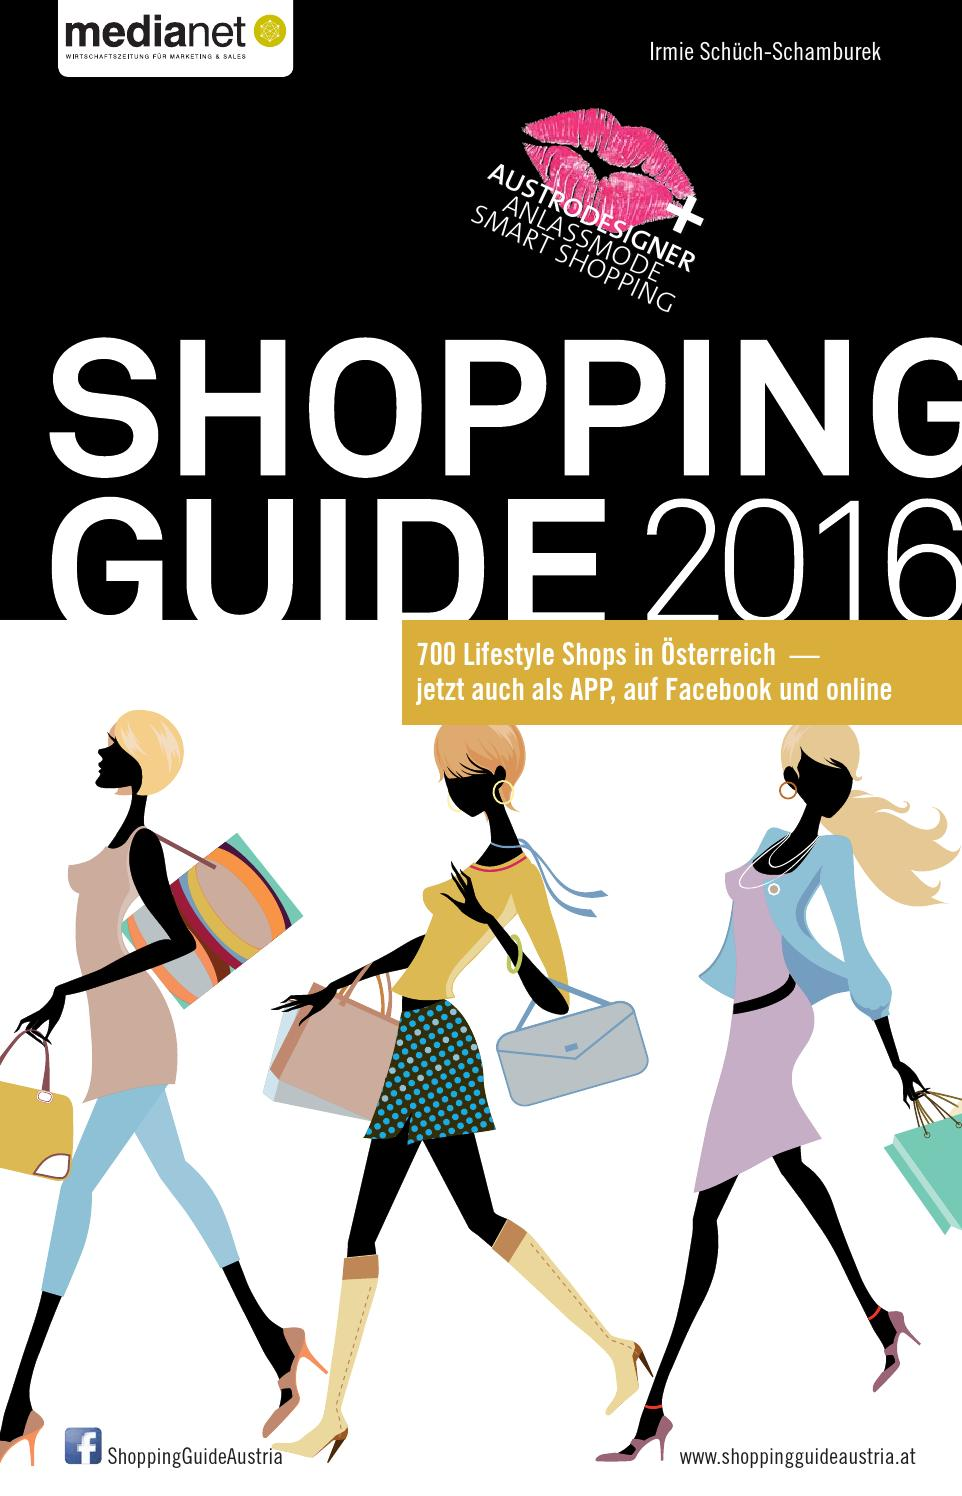 Shopping Guide 2016